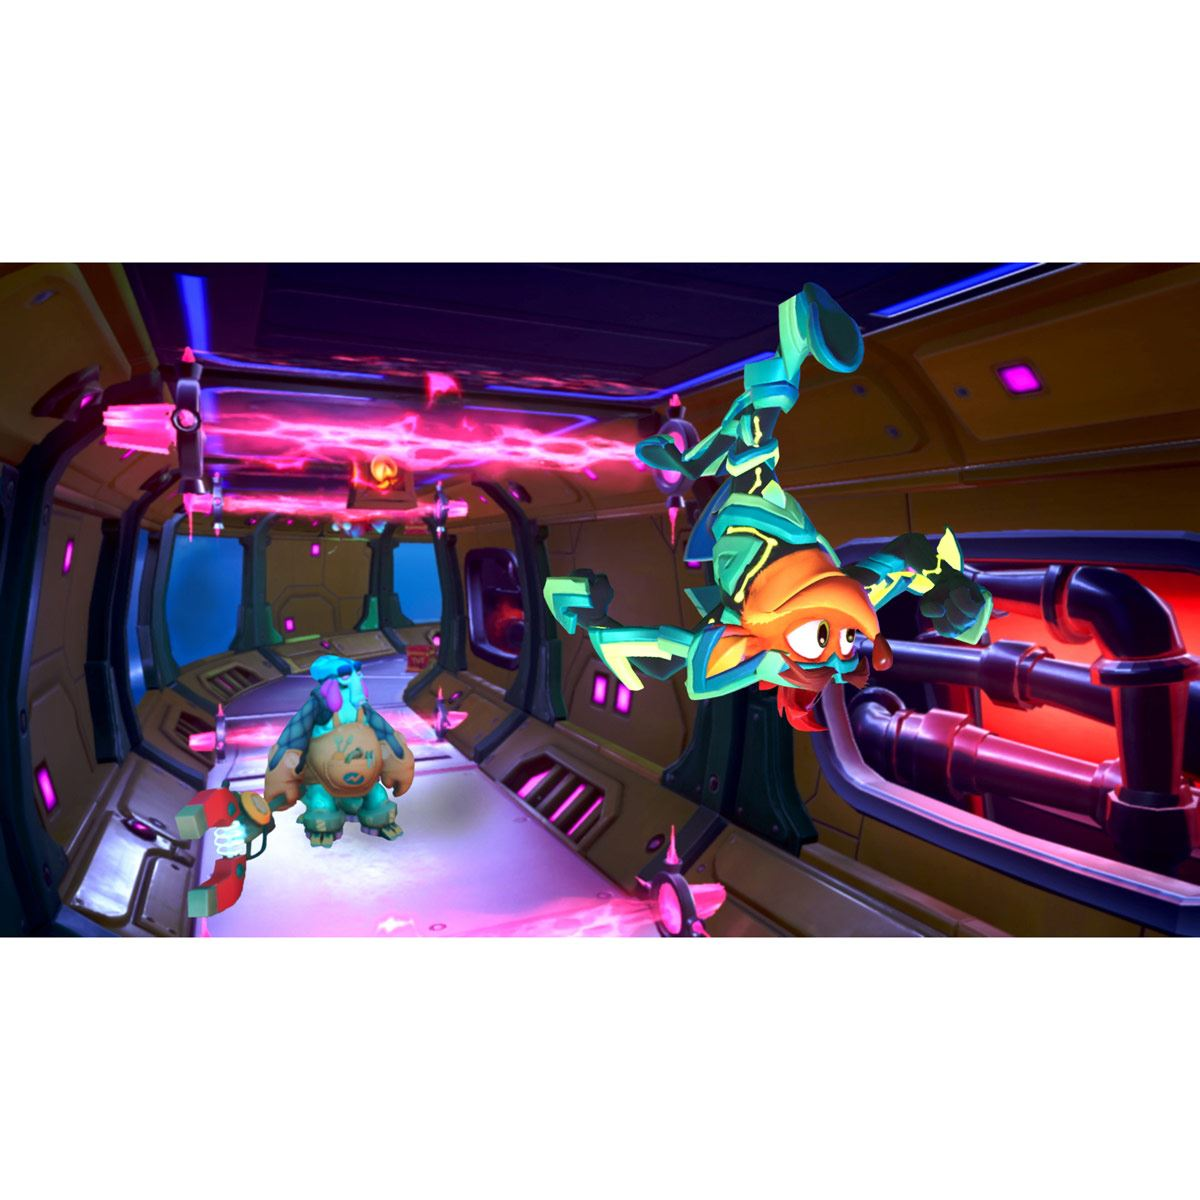 NSW Crash Bandicoot 4 Its About Time